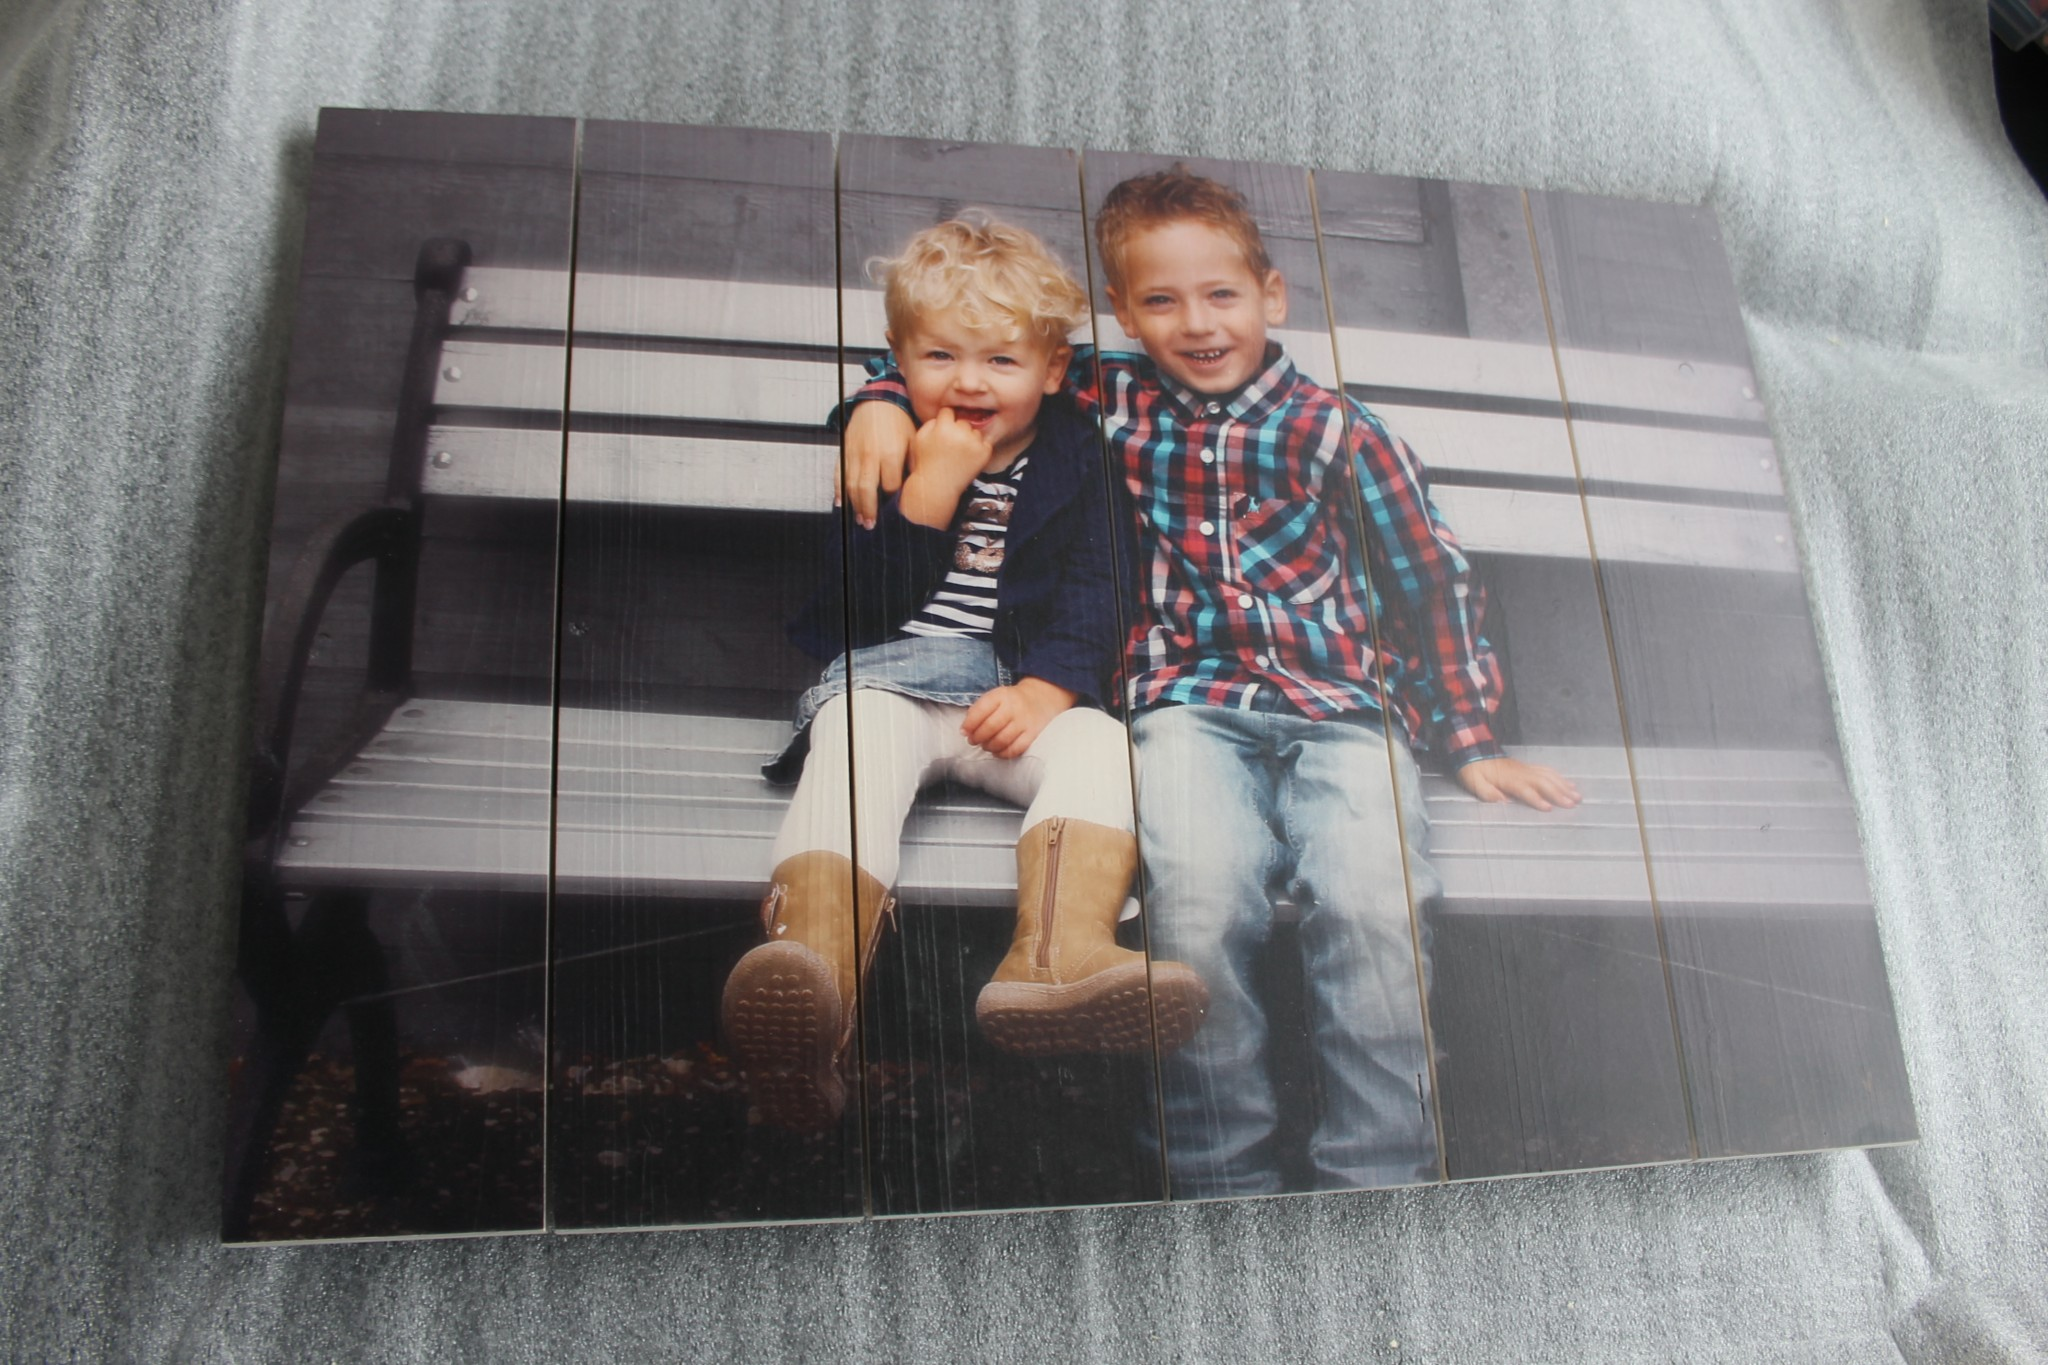 photogifts-unieke-fotoprints